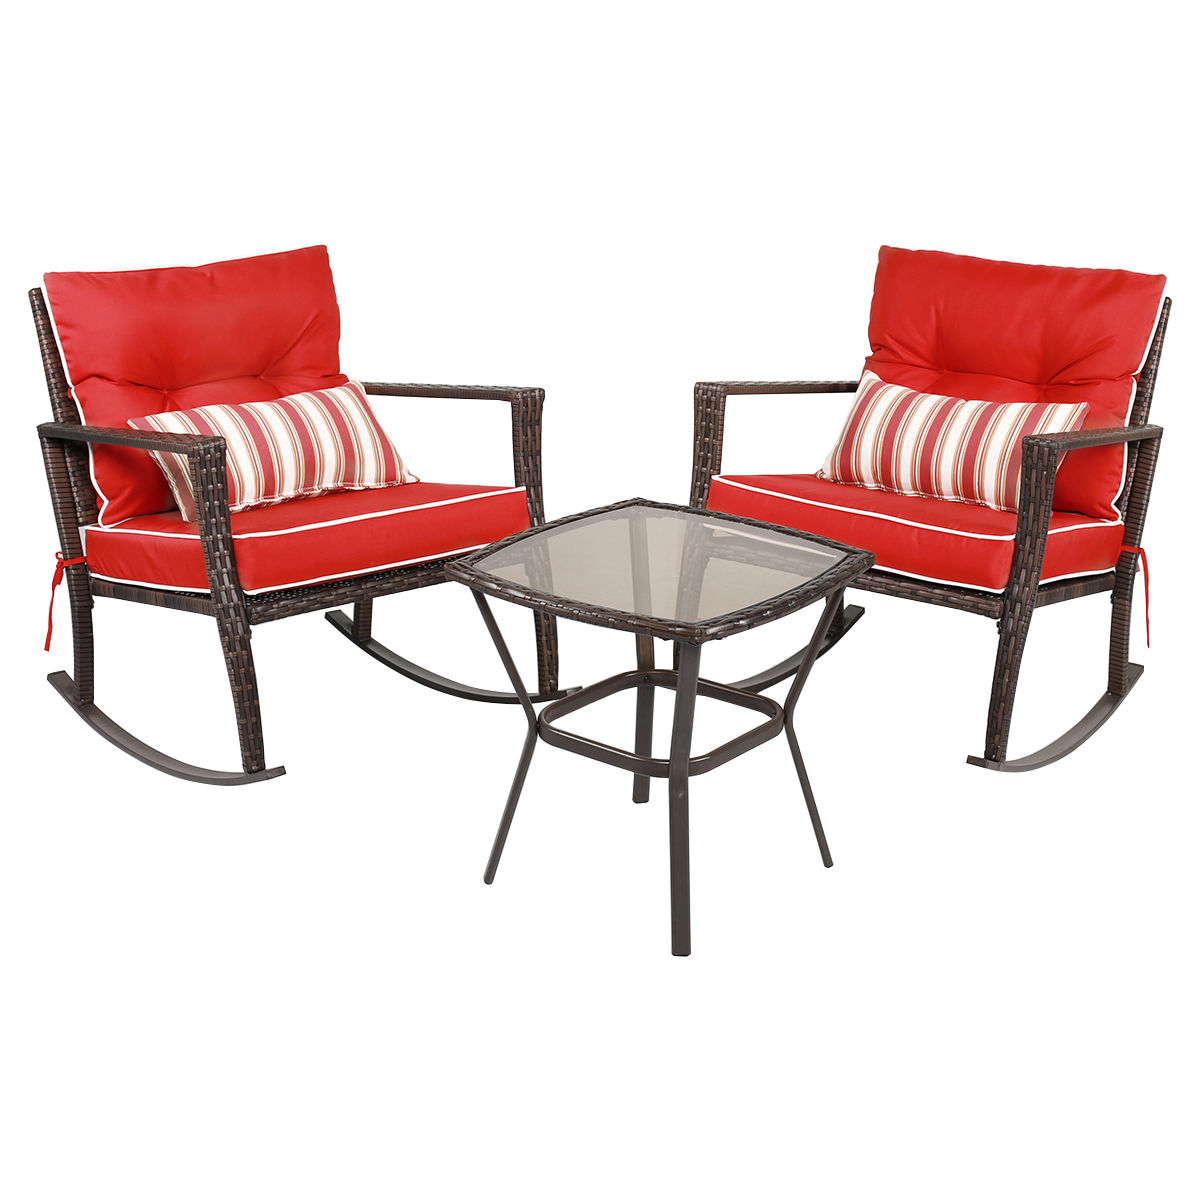 Costway 3 PCS Patio Rattan Wicker Furniture Set Rocking Chair Coffee Table  W/Cushions